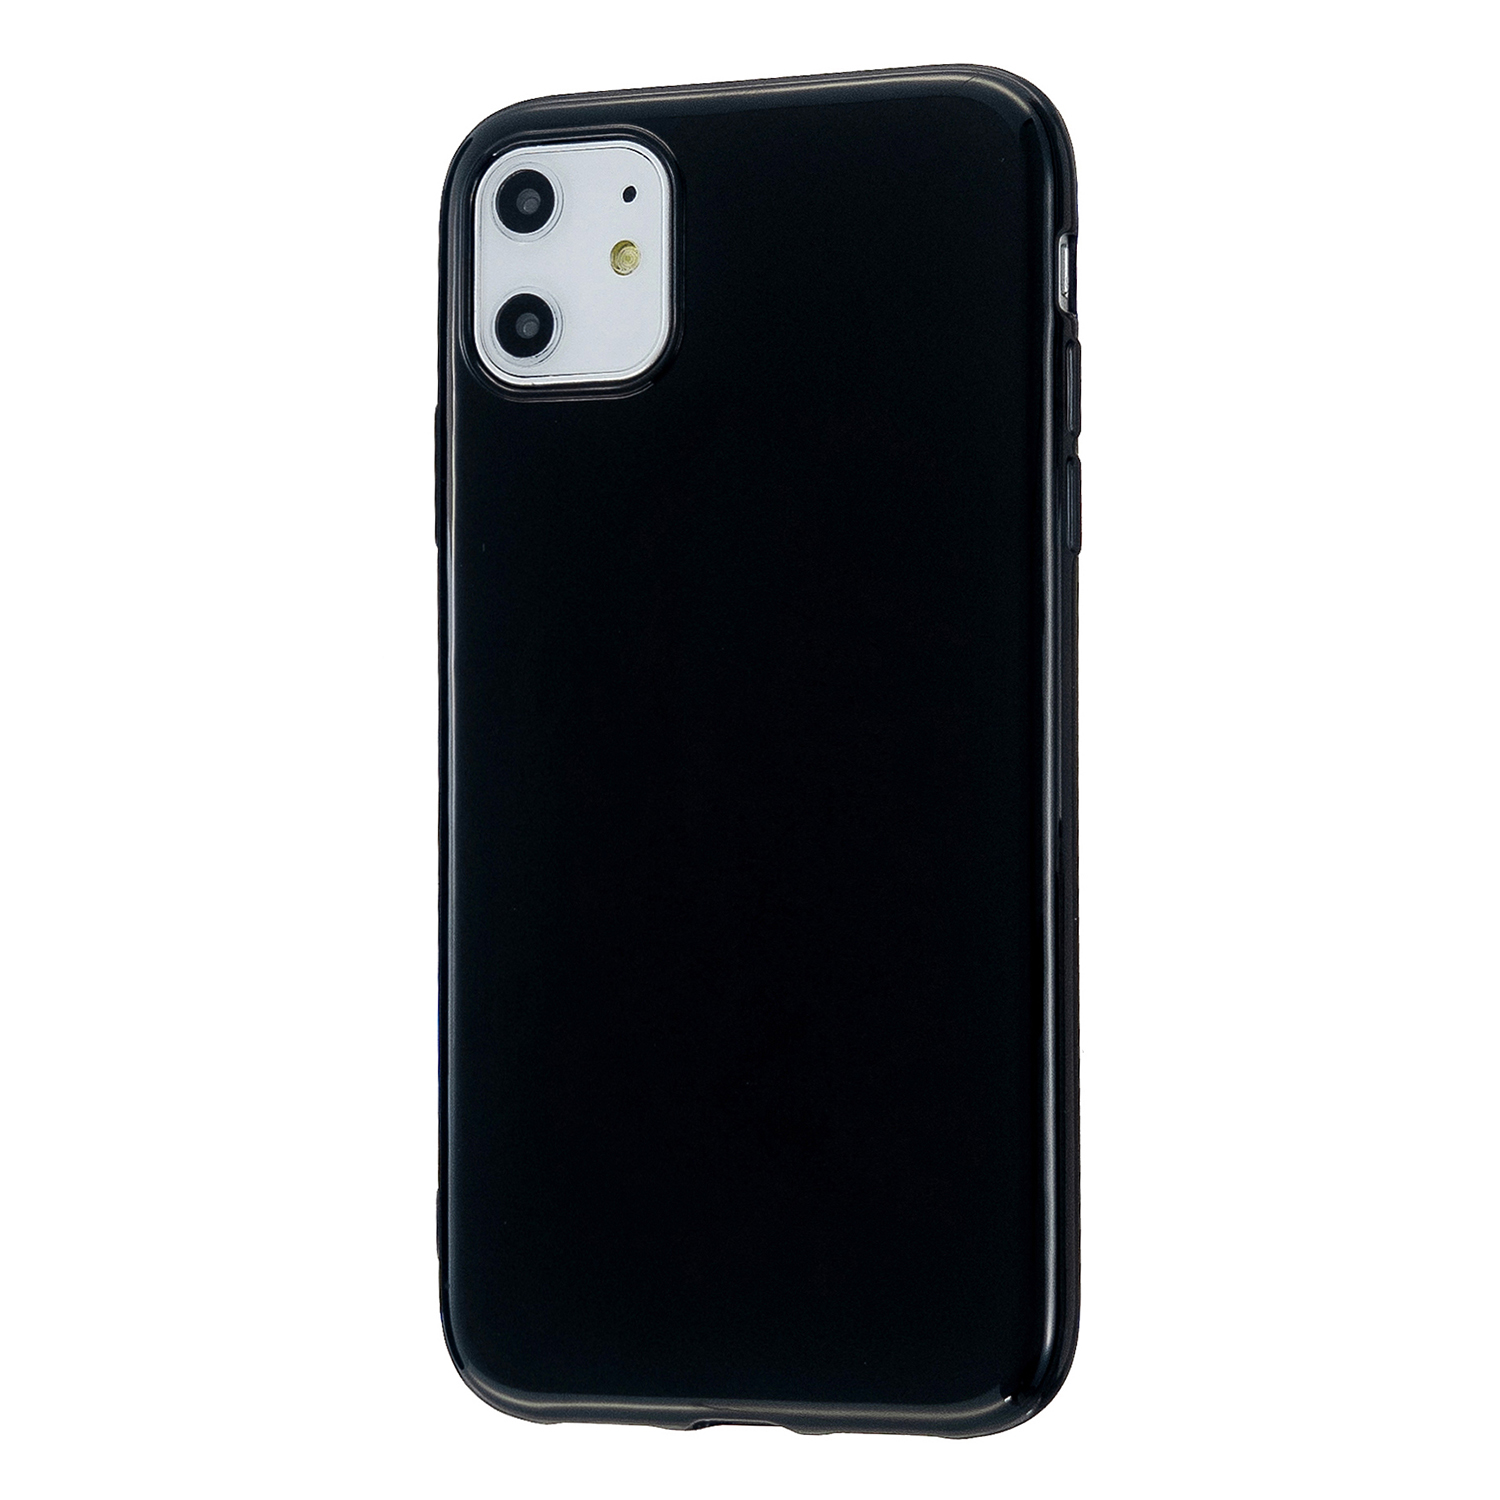 For iPhone 11/11 Pro/11 Pro Max Smartphone Cover Slim Fit Glossy TPU Phone Case Full Body Protection Shell Bright black